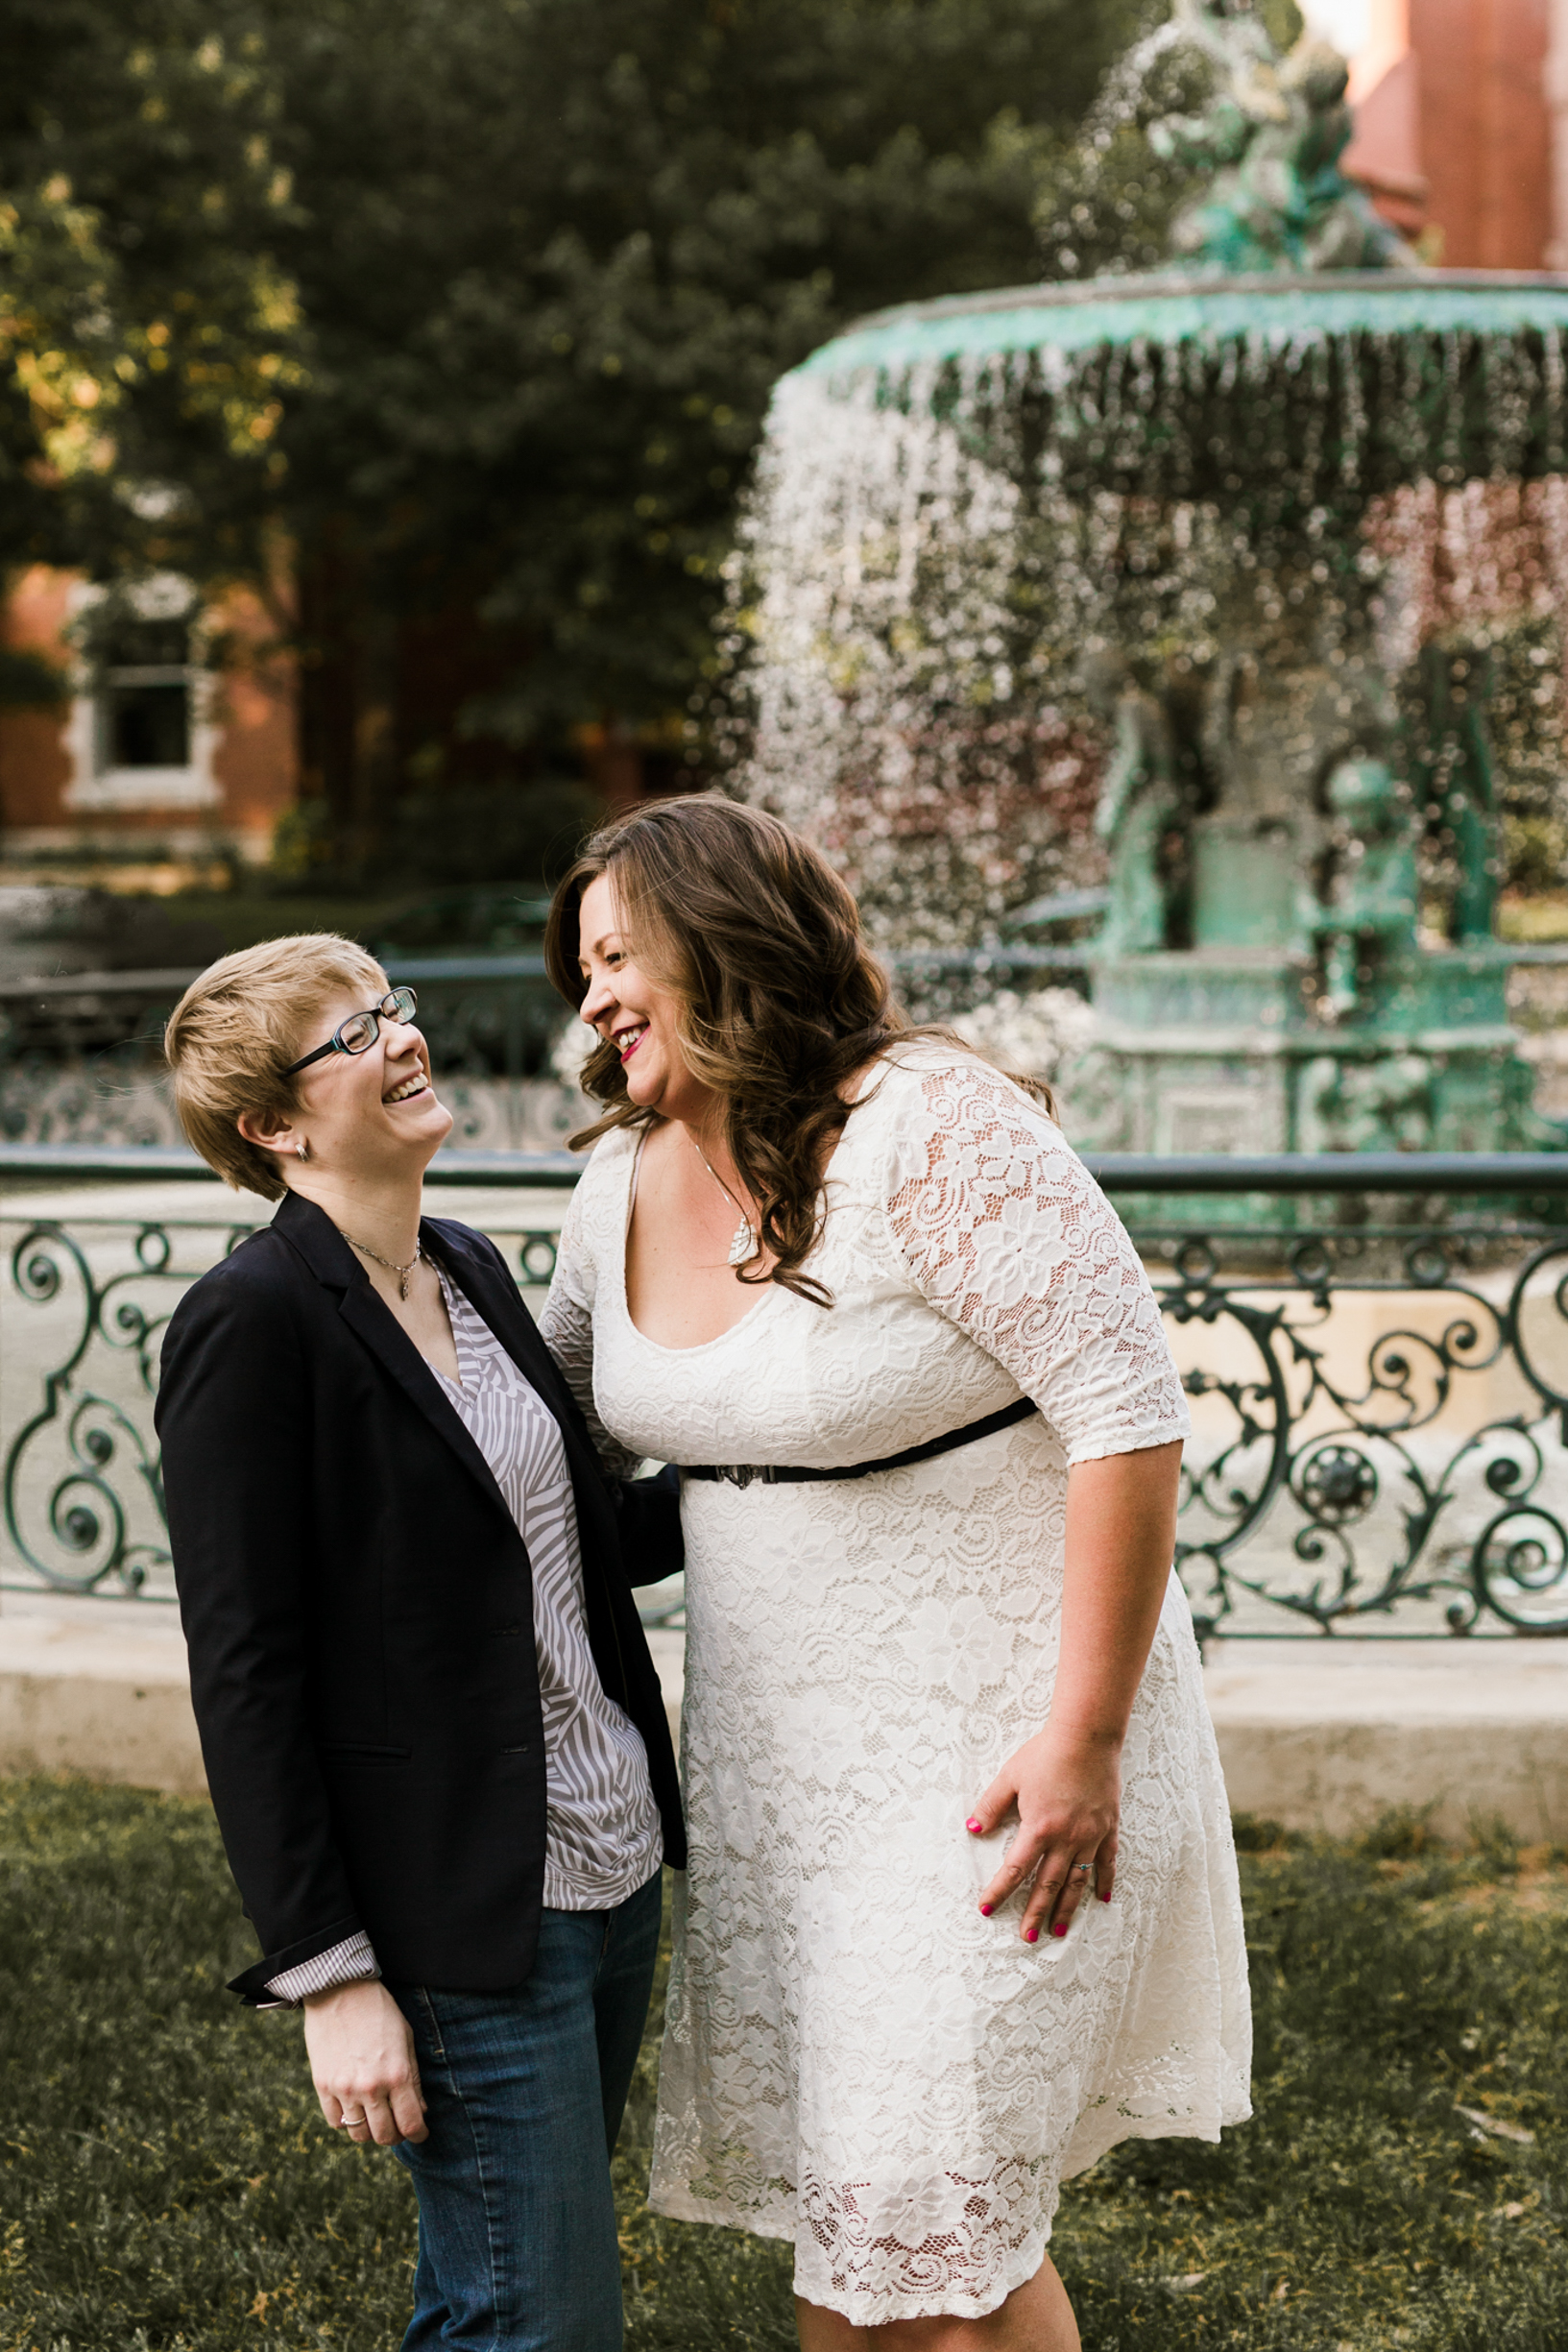 Crystal Ludwick Photo Louisville, Kentucky Wedding Photographer (7 of 24).jpg